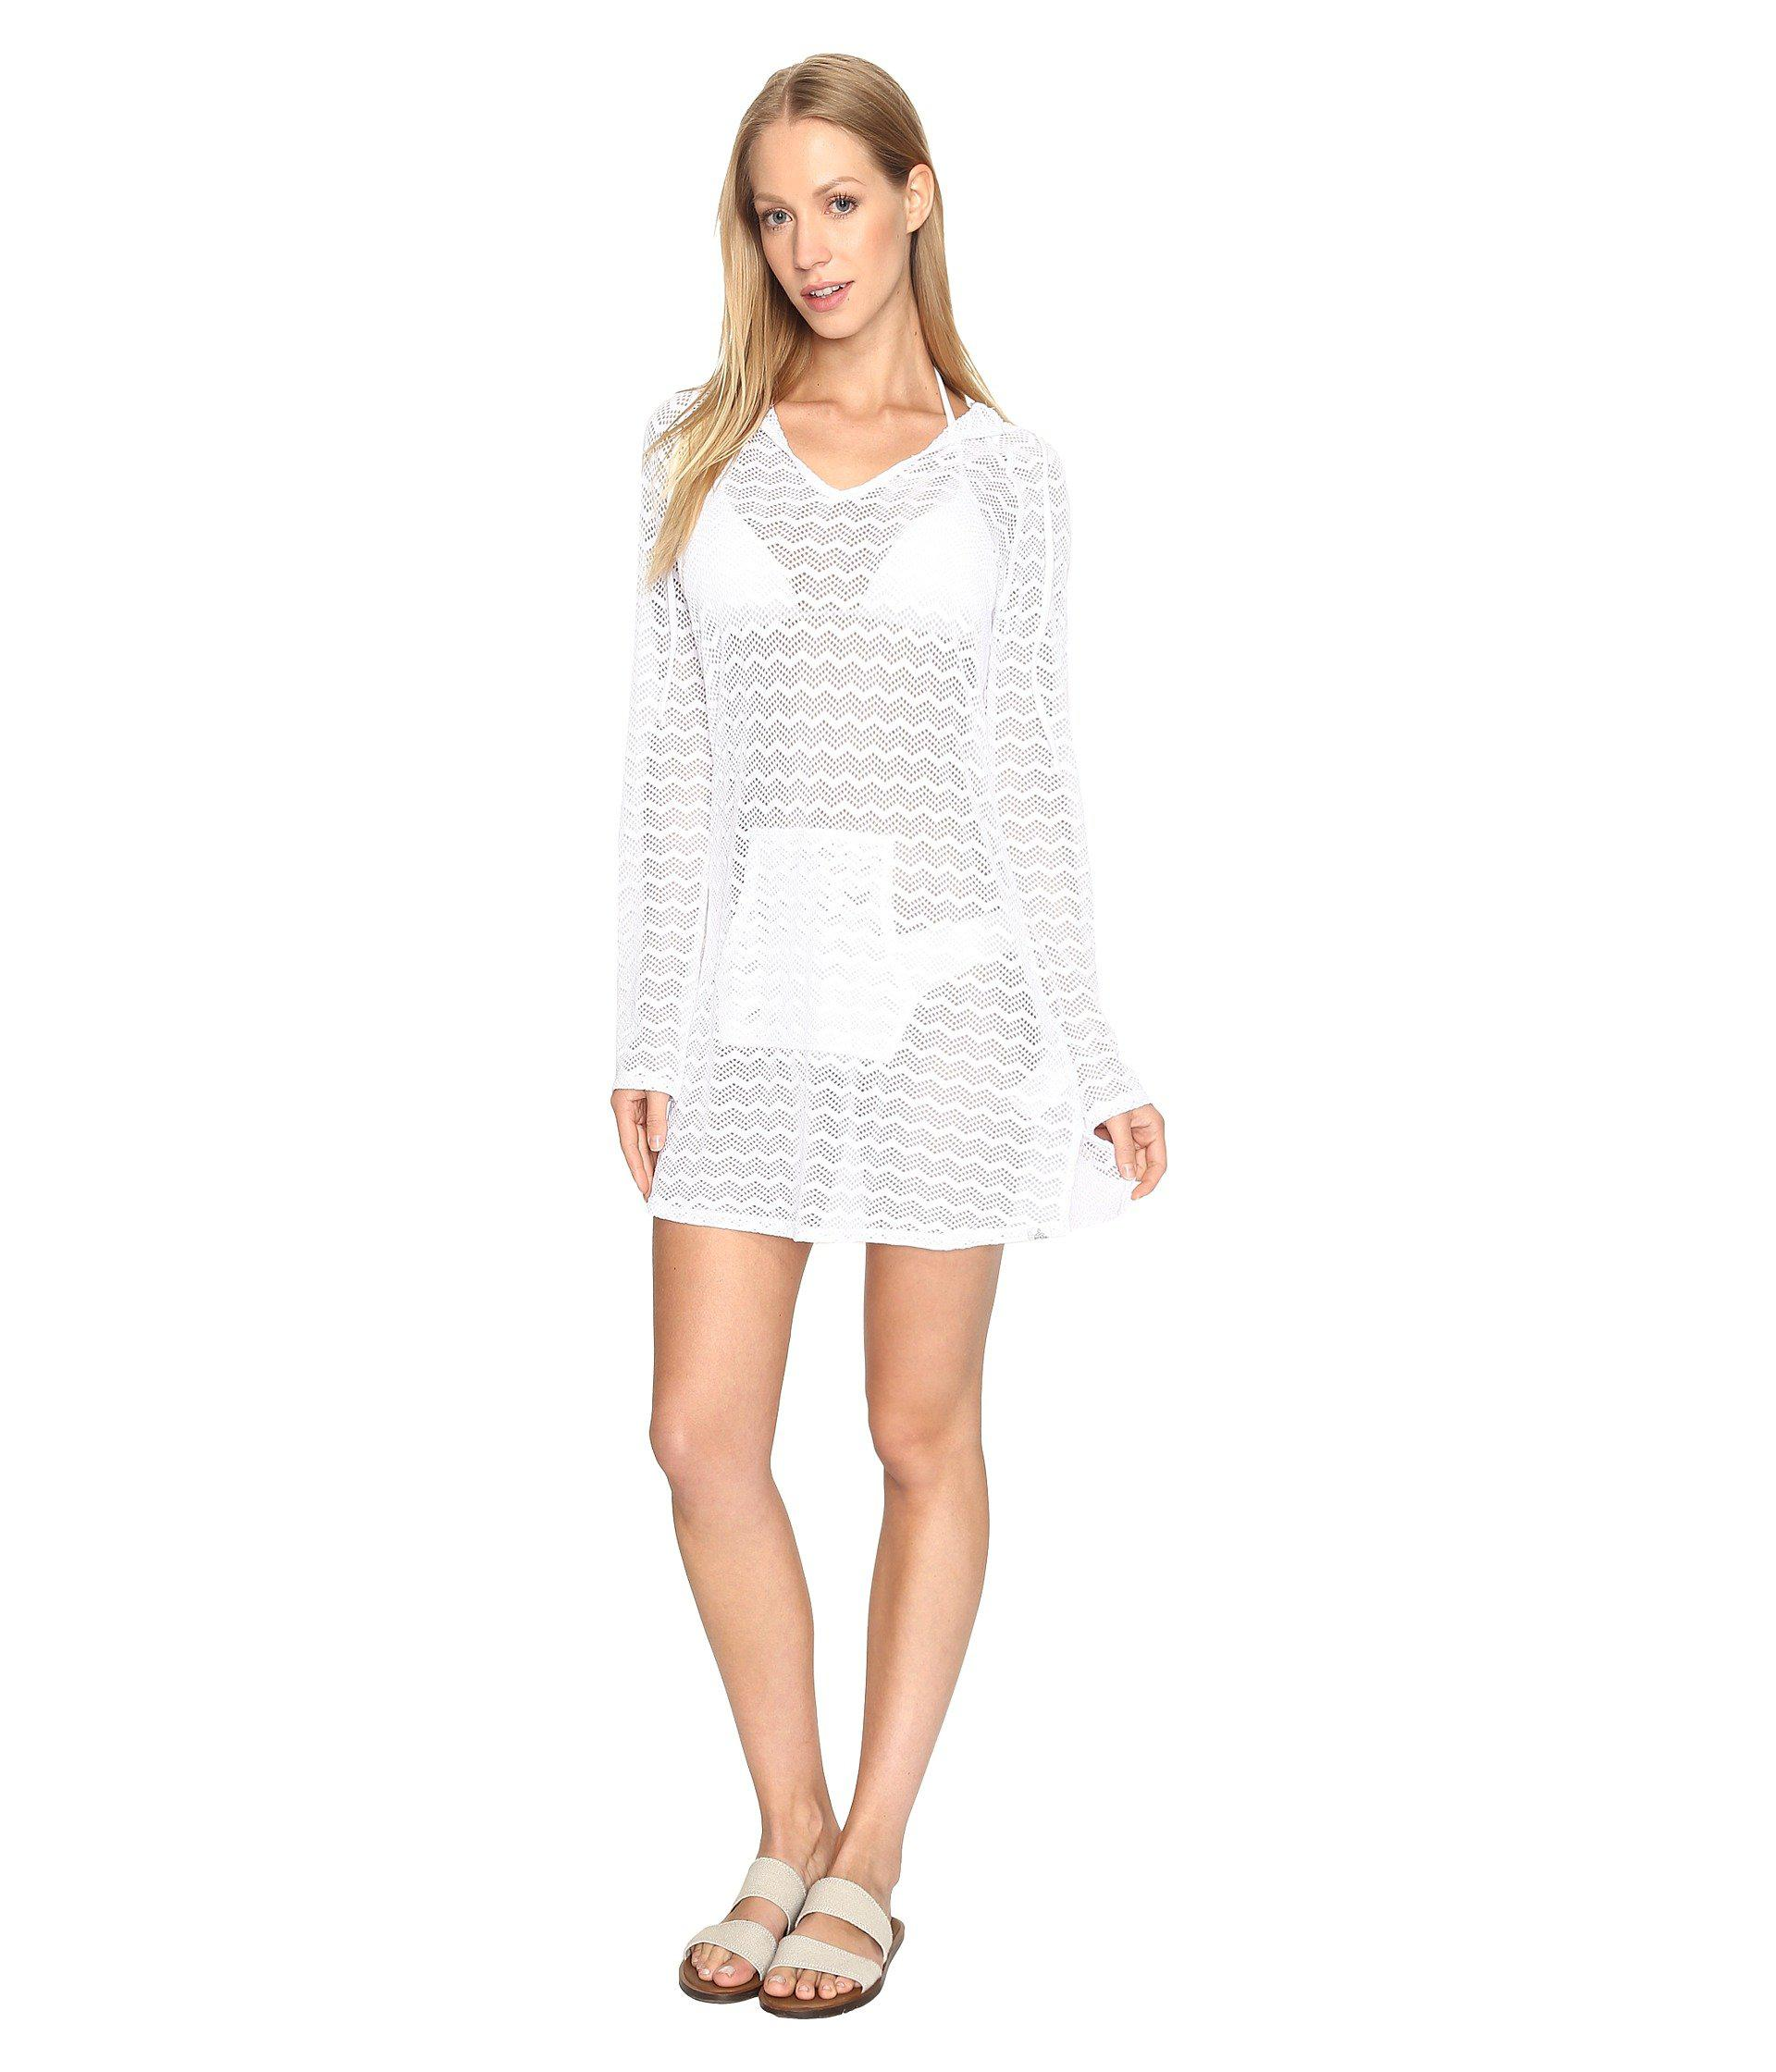 675033ff11 Lyst - Prana Luiza Tunic Cover Up in White